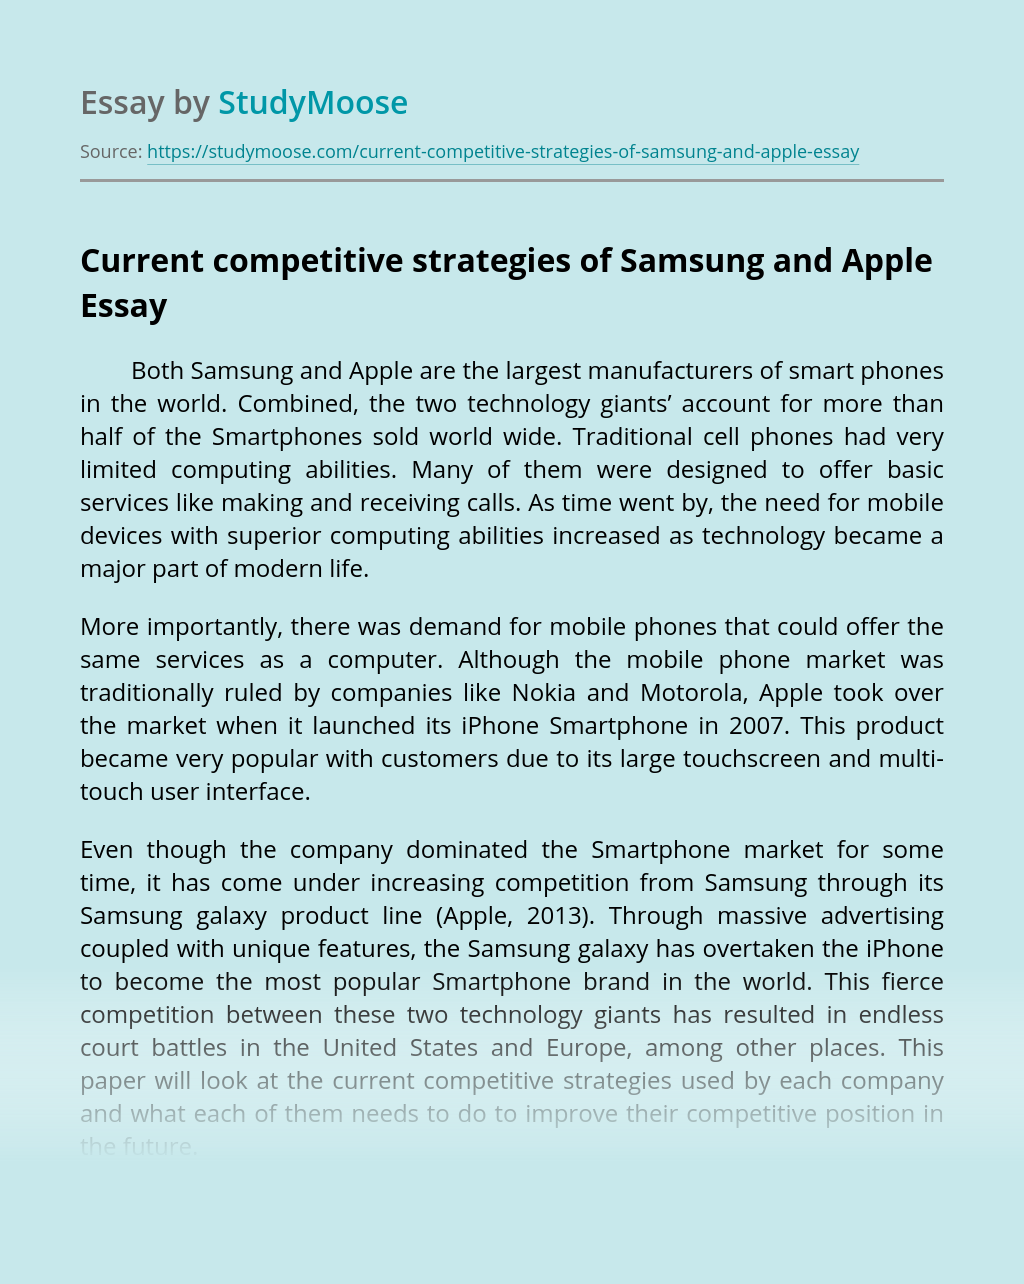 Current competitive strategies of Samsung and Apple